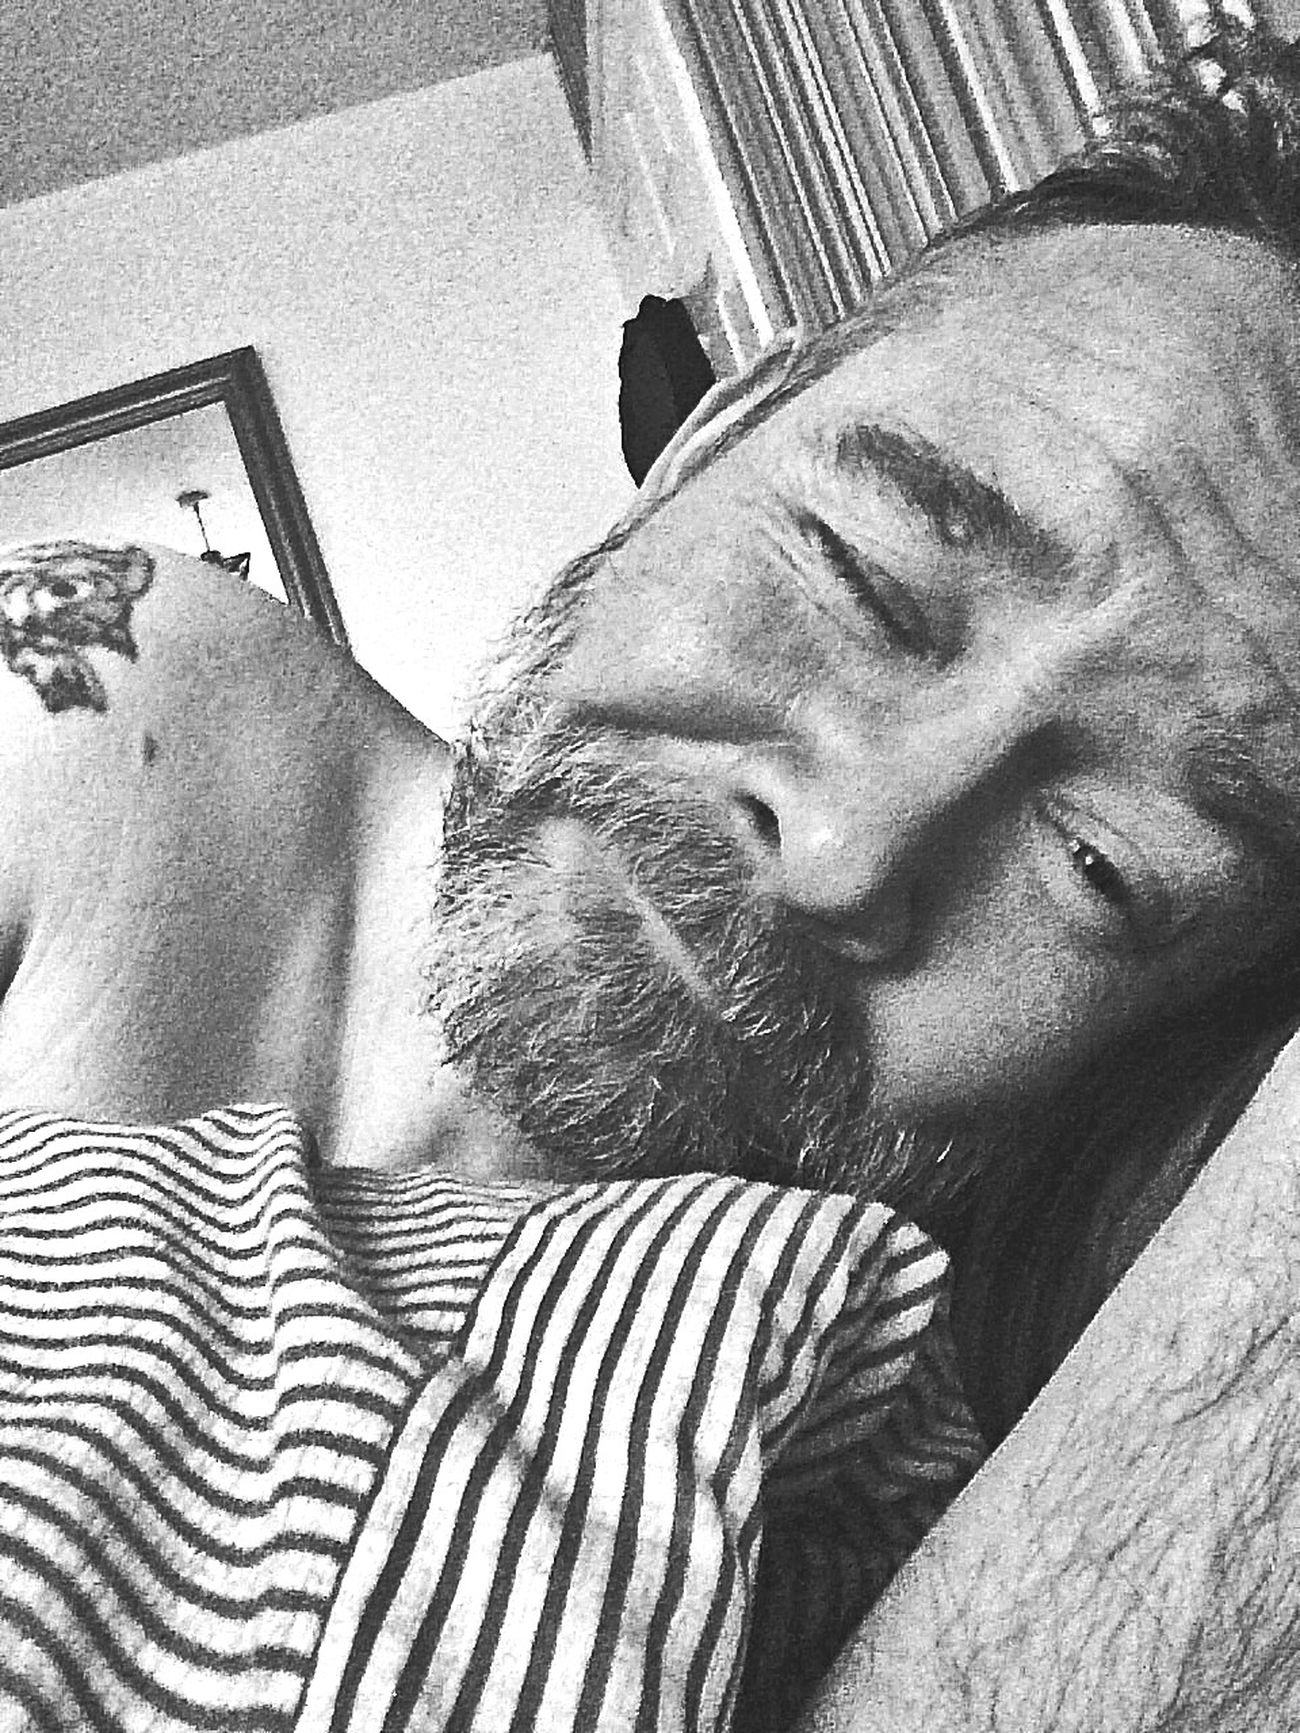 Waking up selfie That's Me Gay Black And White EyeEm Best Shots - Black + White Monochrome EyeEm Best Selfie's  EyeEm Best Shots Eye4photography  Bw_collection Men